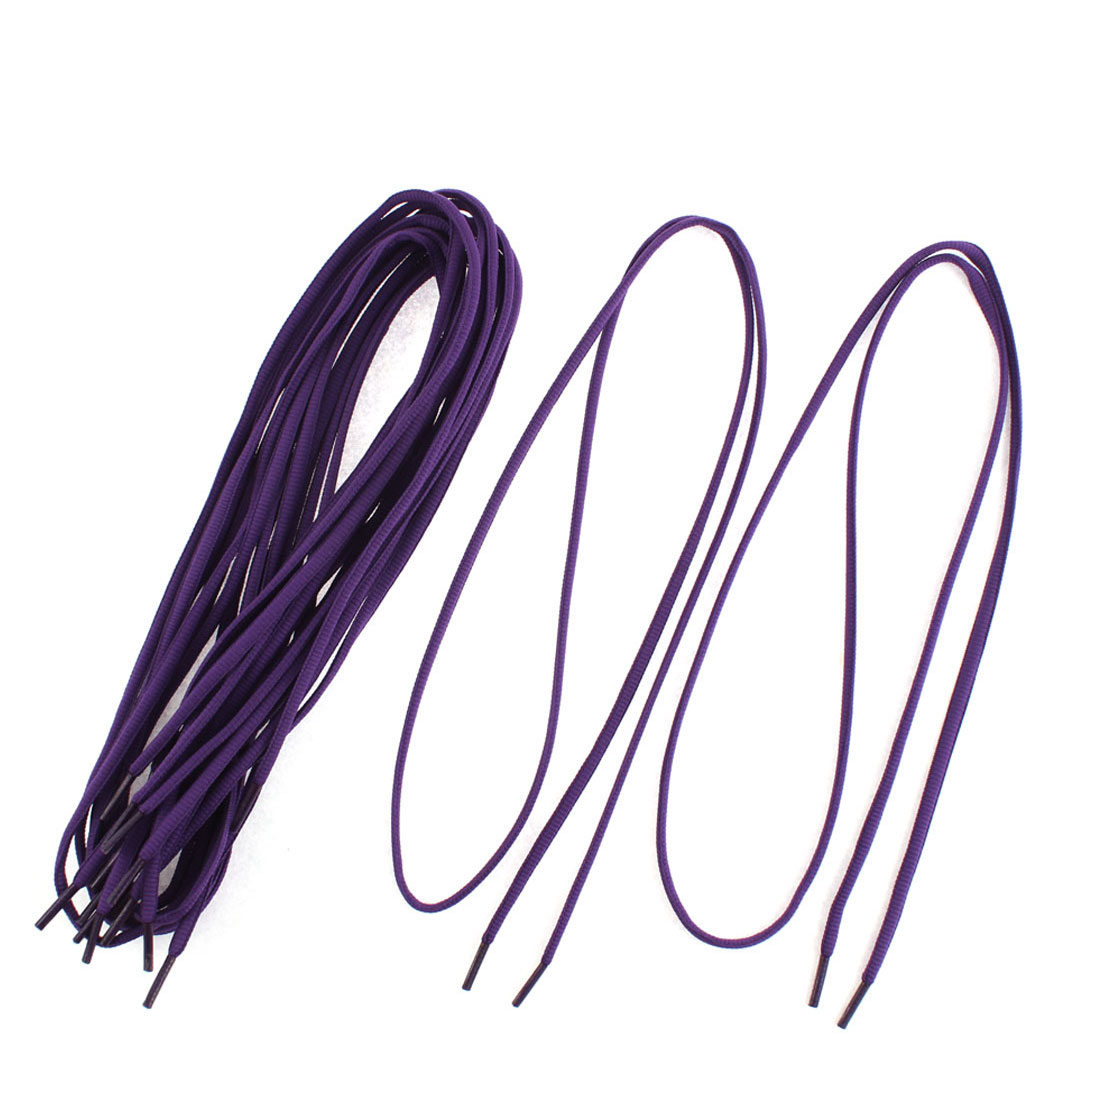 Sports Sneaks Canvas Shoes Shoelaces String Dark Purple 5 Pairs